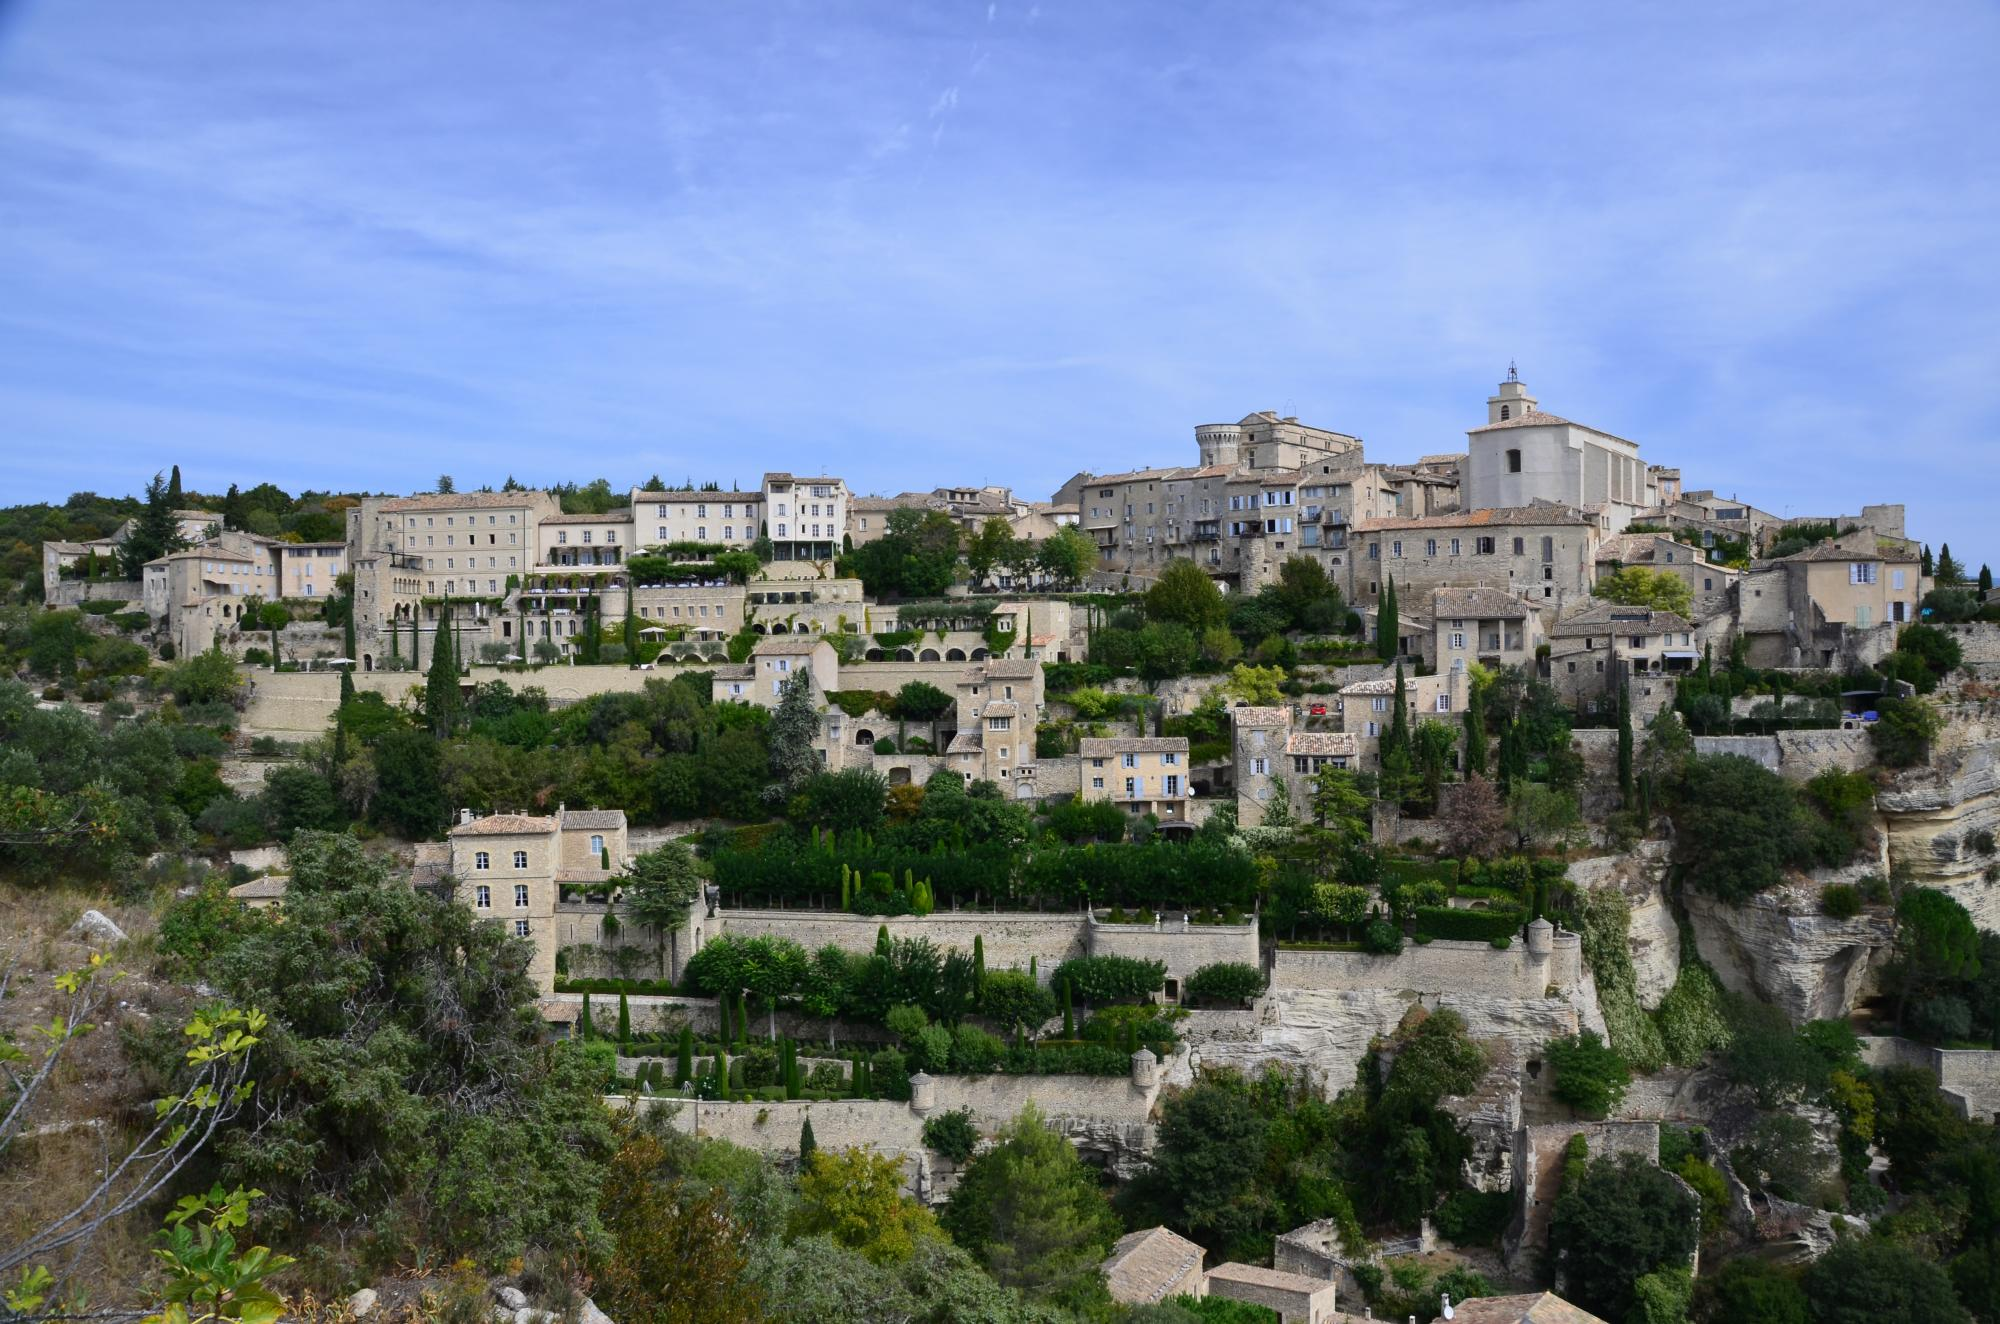 Discover Provence - Vacation package : France Coast to Coast  - Land of France, travel agency in France